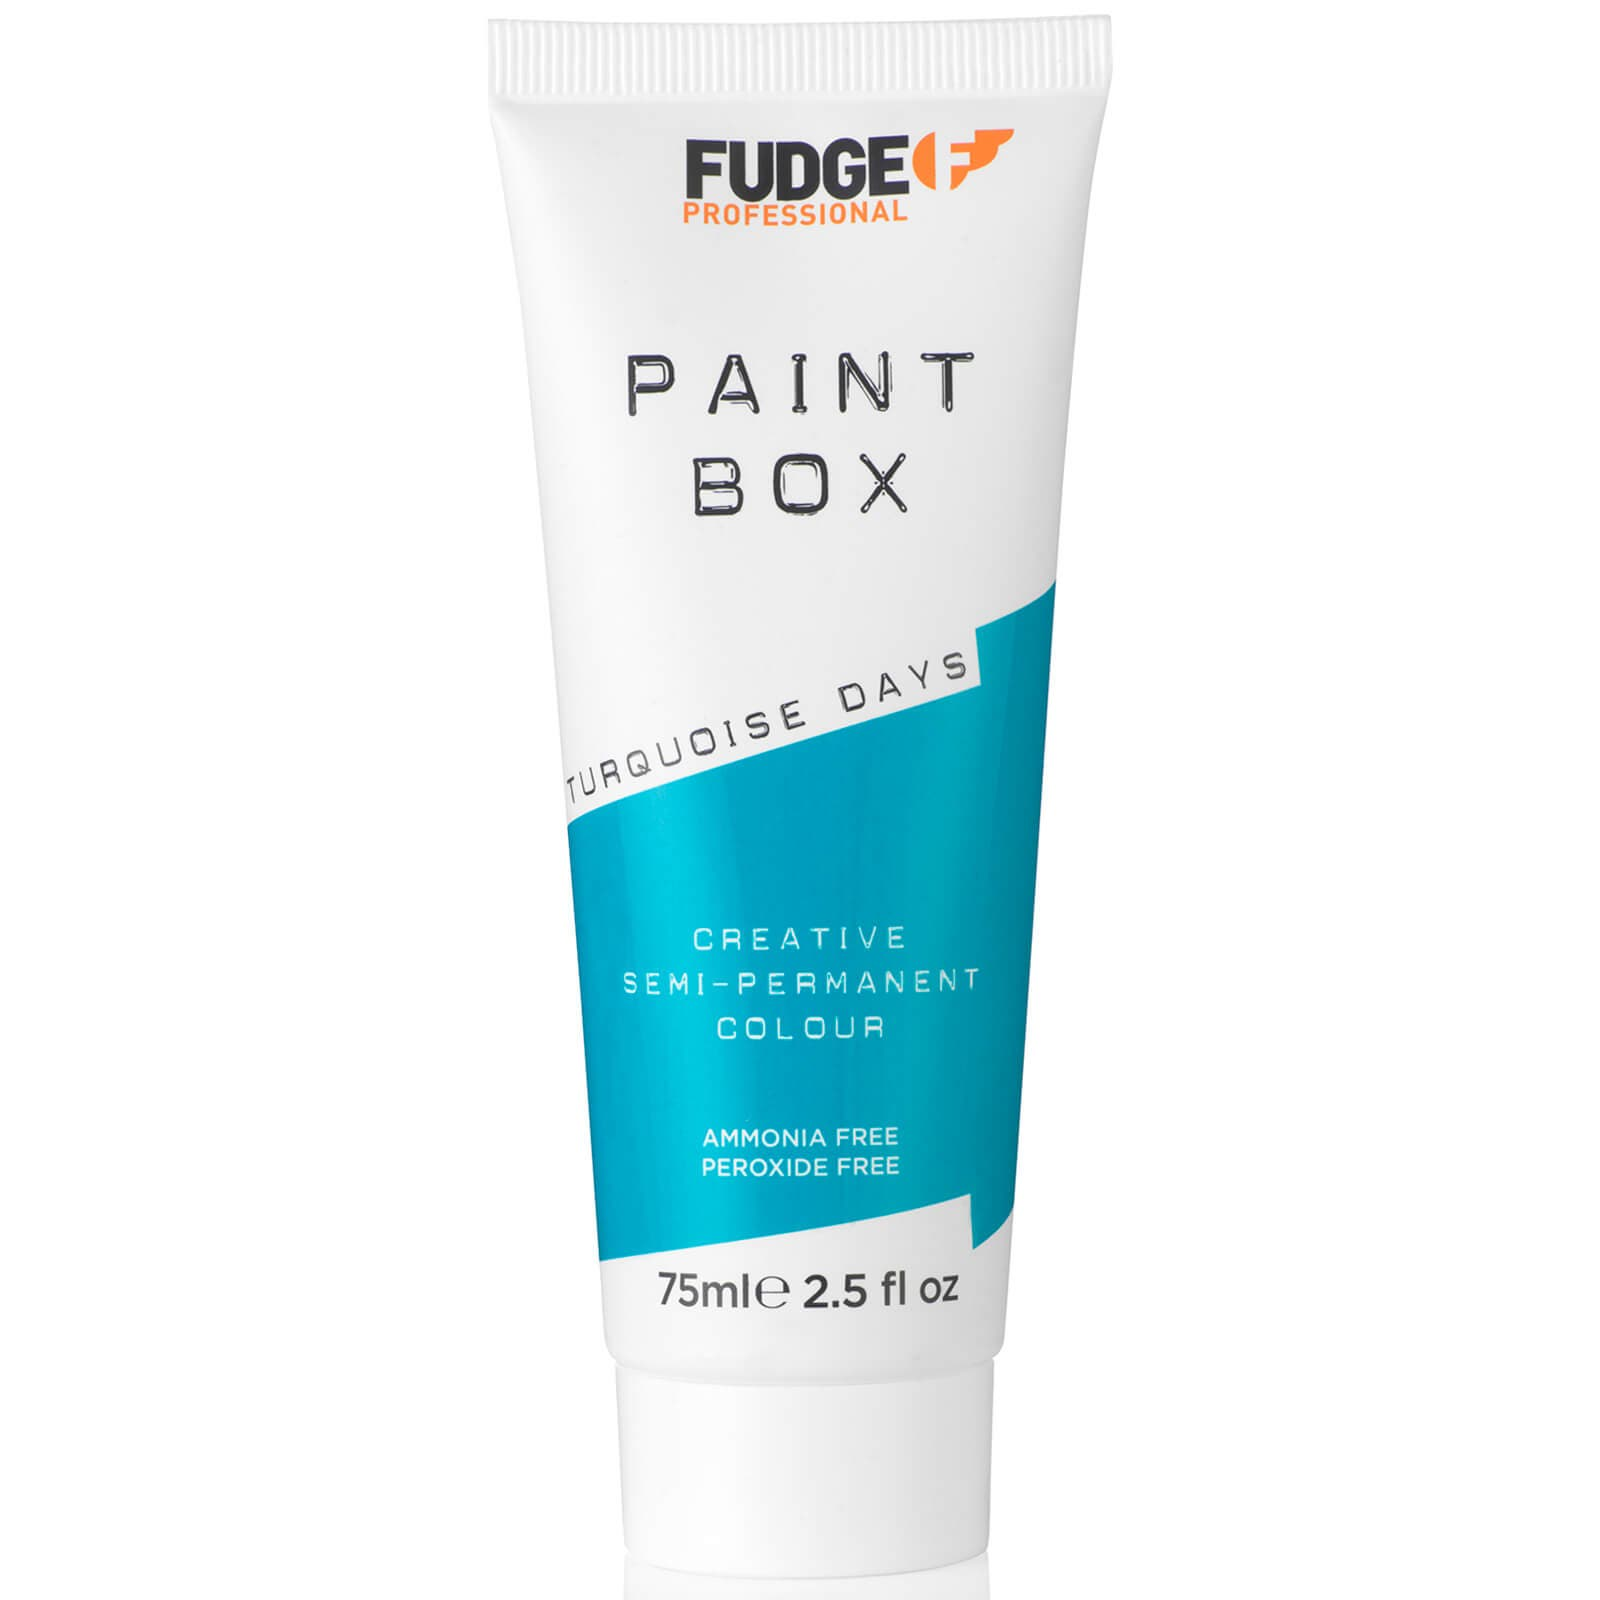 New Fudge Turquoise Days Paint Box Hair colour - Semi Permanent Hair Dye